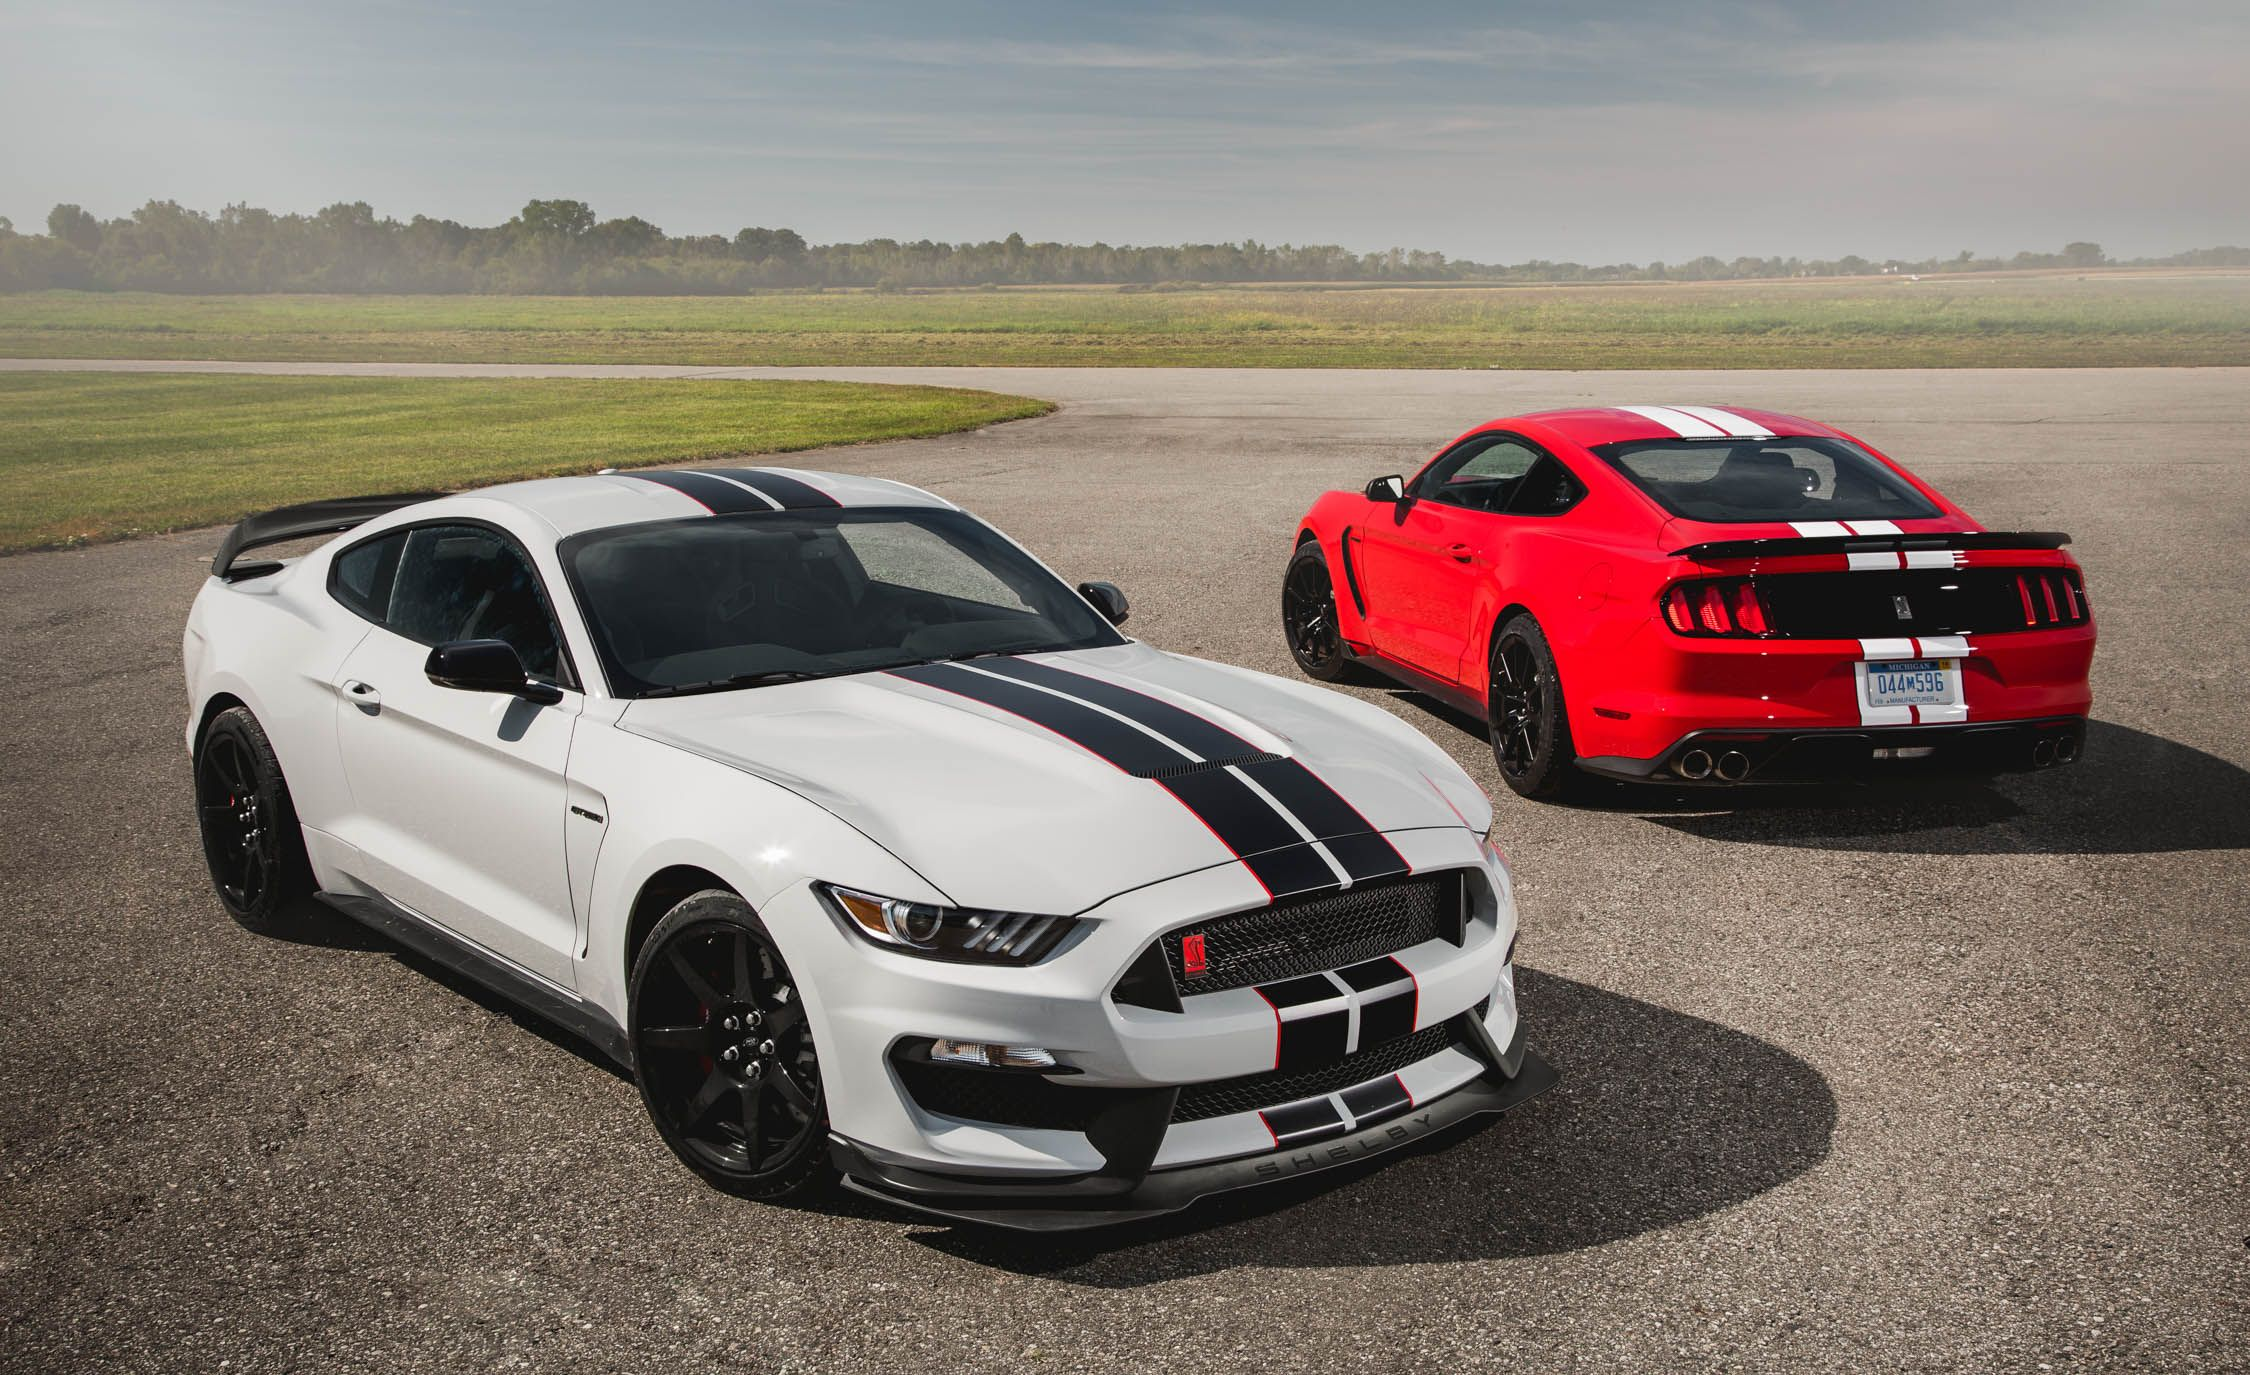 New 2016 Ford Mustang Shelby Gt350r And Gt350 With Images Mustang Shelby Ford Mustang Shelby Gt500 Ford Mustang Shelby